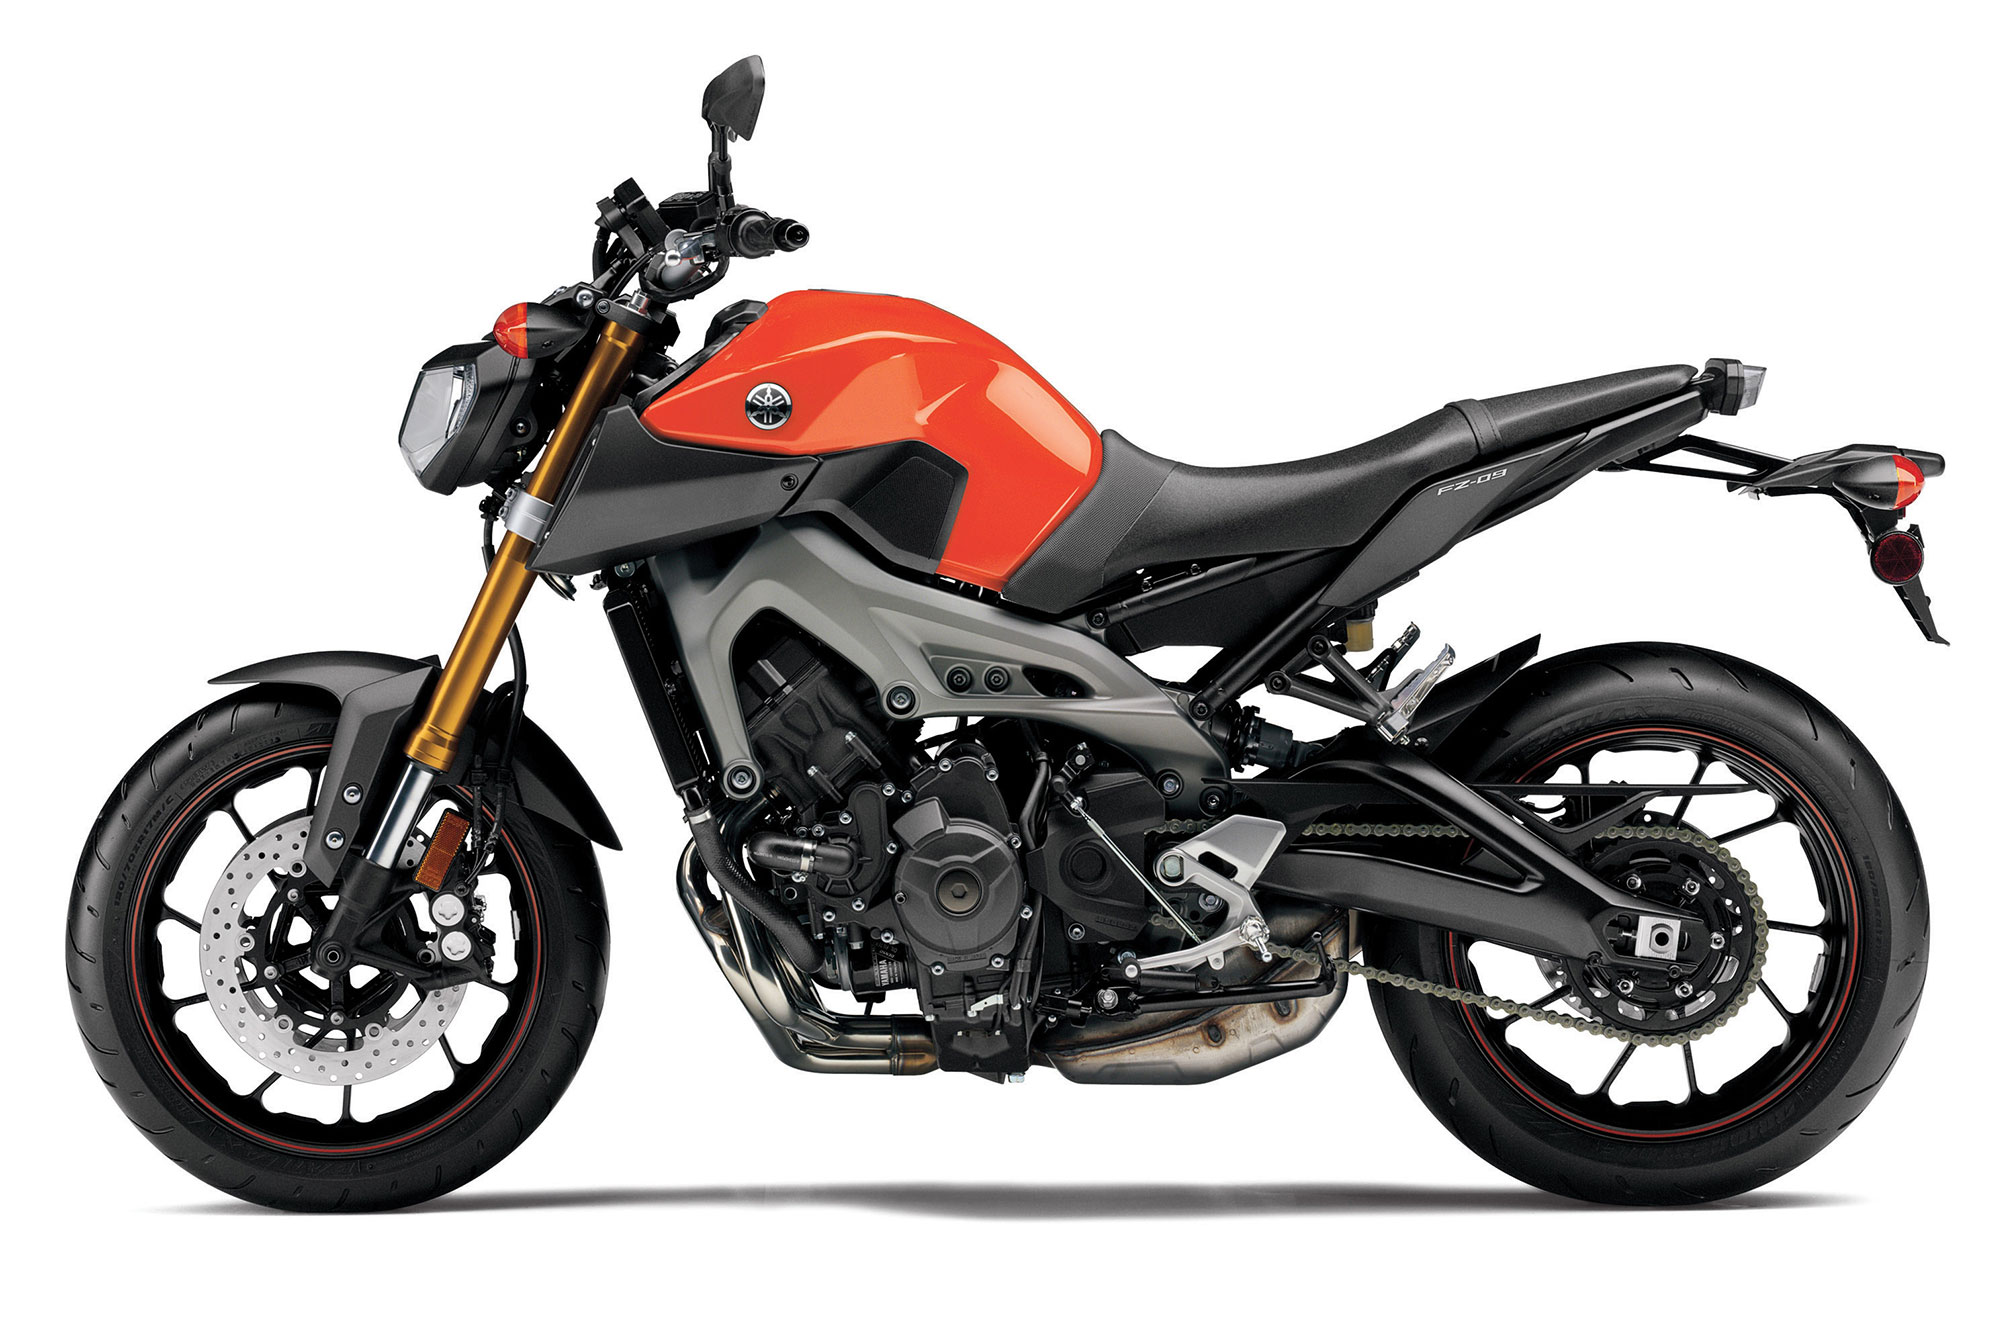 2015 Yamaha FZ-09 Review